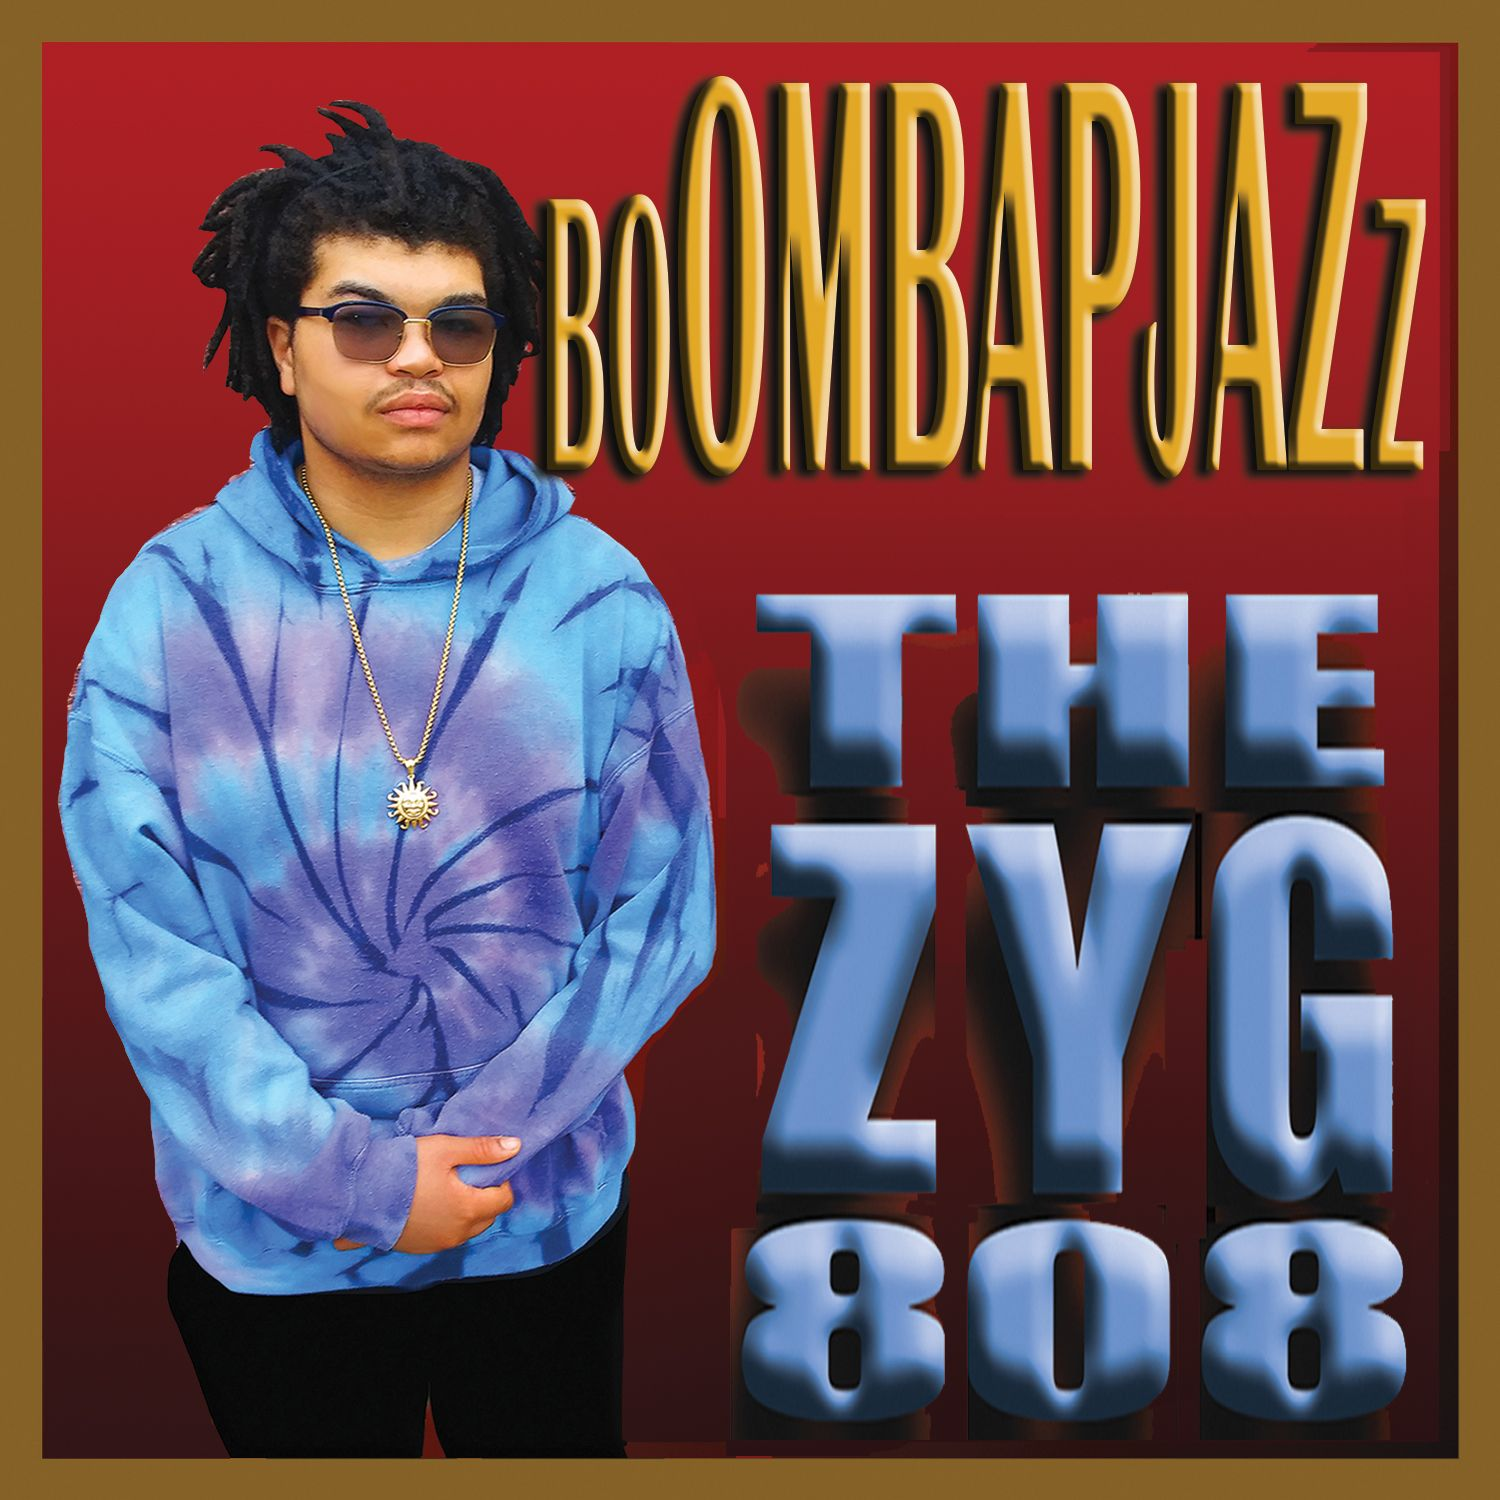 BoOMBAPJAZz is the new album by The ZYG 808